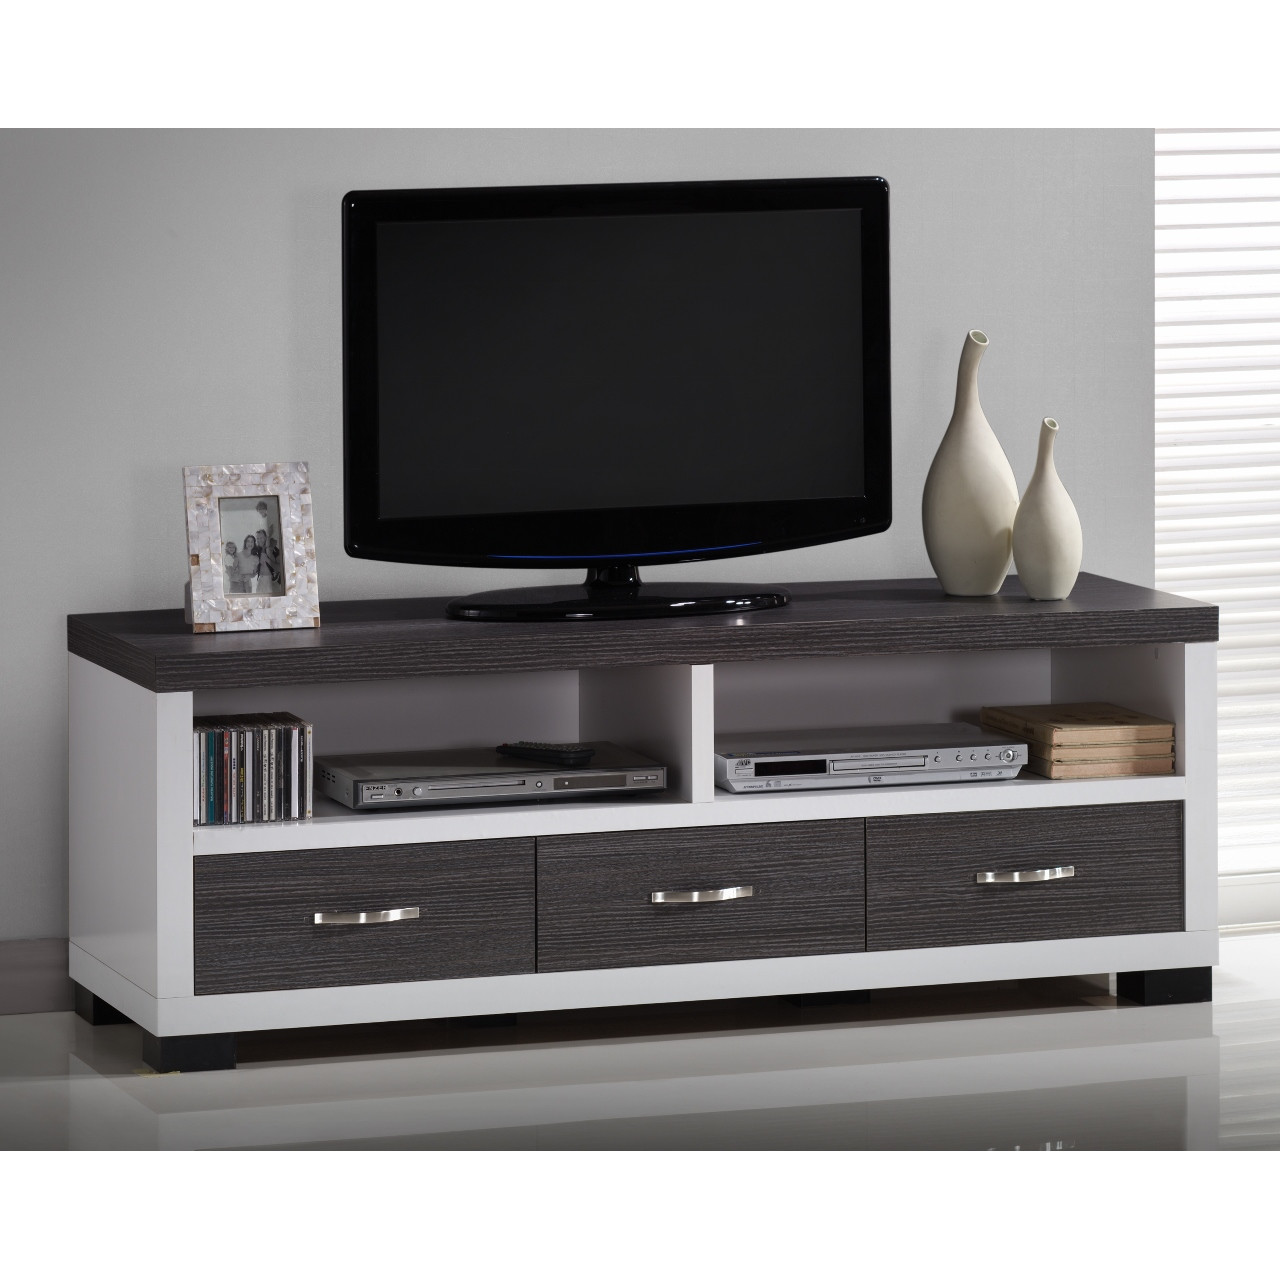 Baxton+Studio+Oxley+59-Inch+Modern+and+Contemporary+Two-tone+White+and+Dark+Brown+Entertainment+TV+Cabinet+with+Three+Drawers